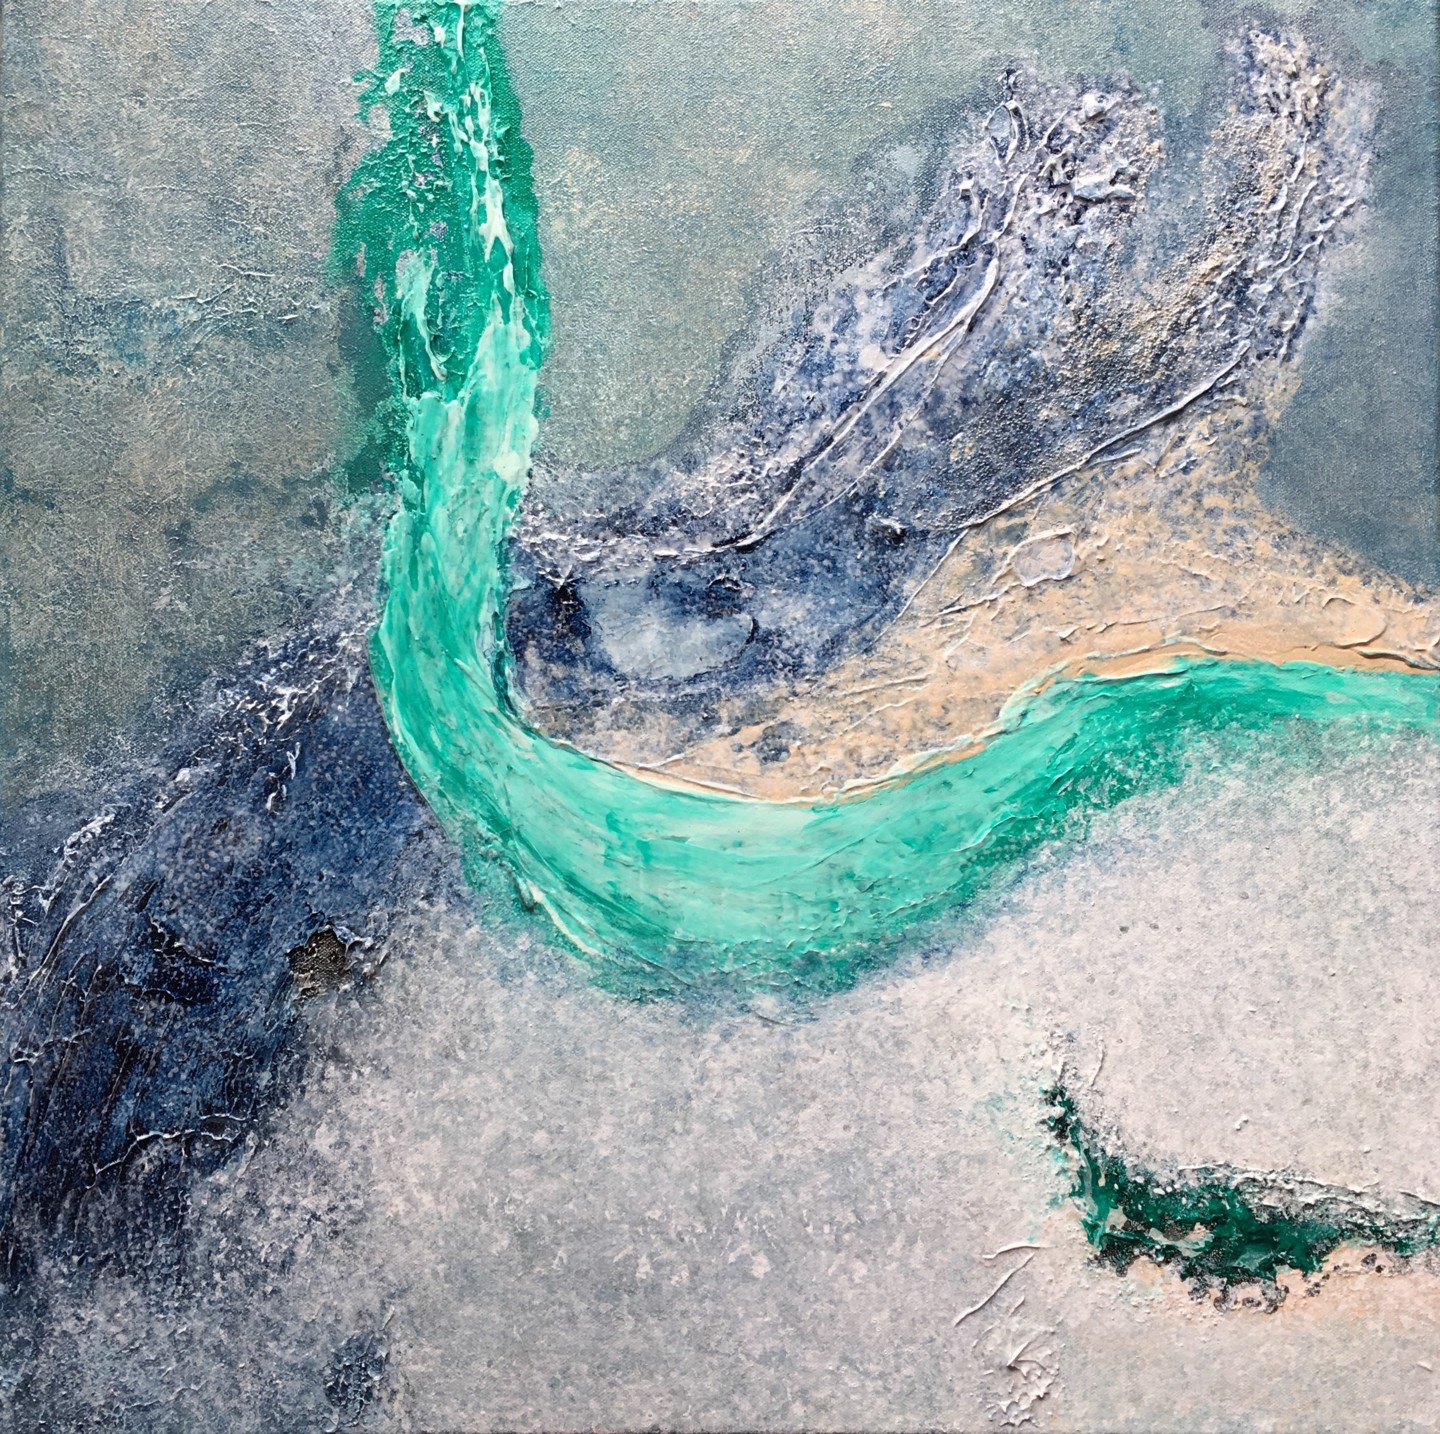 Klara Gunnlaugsdottir - Aqua Splash (60x60cm) Ready to hang-Free shipping